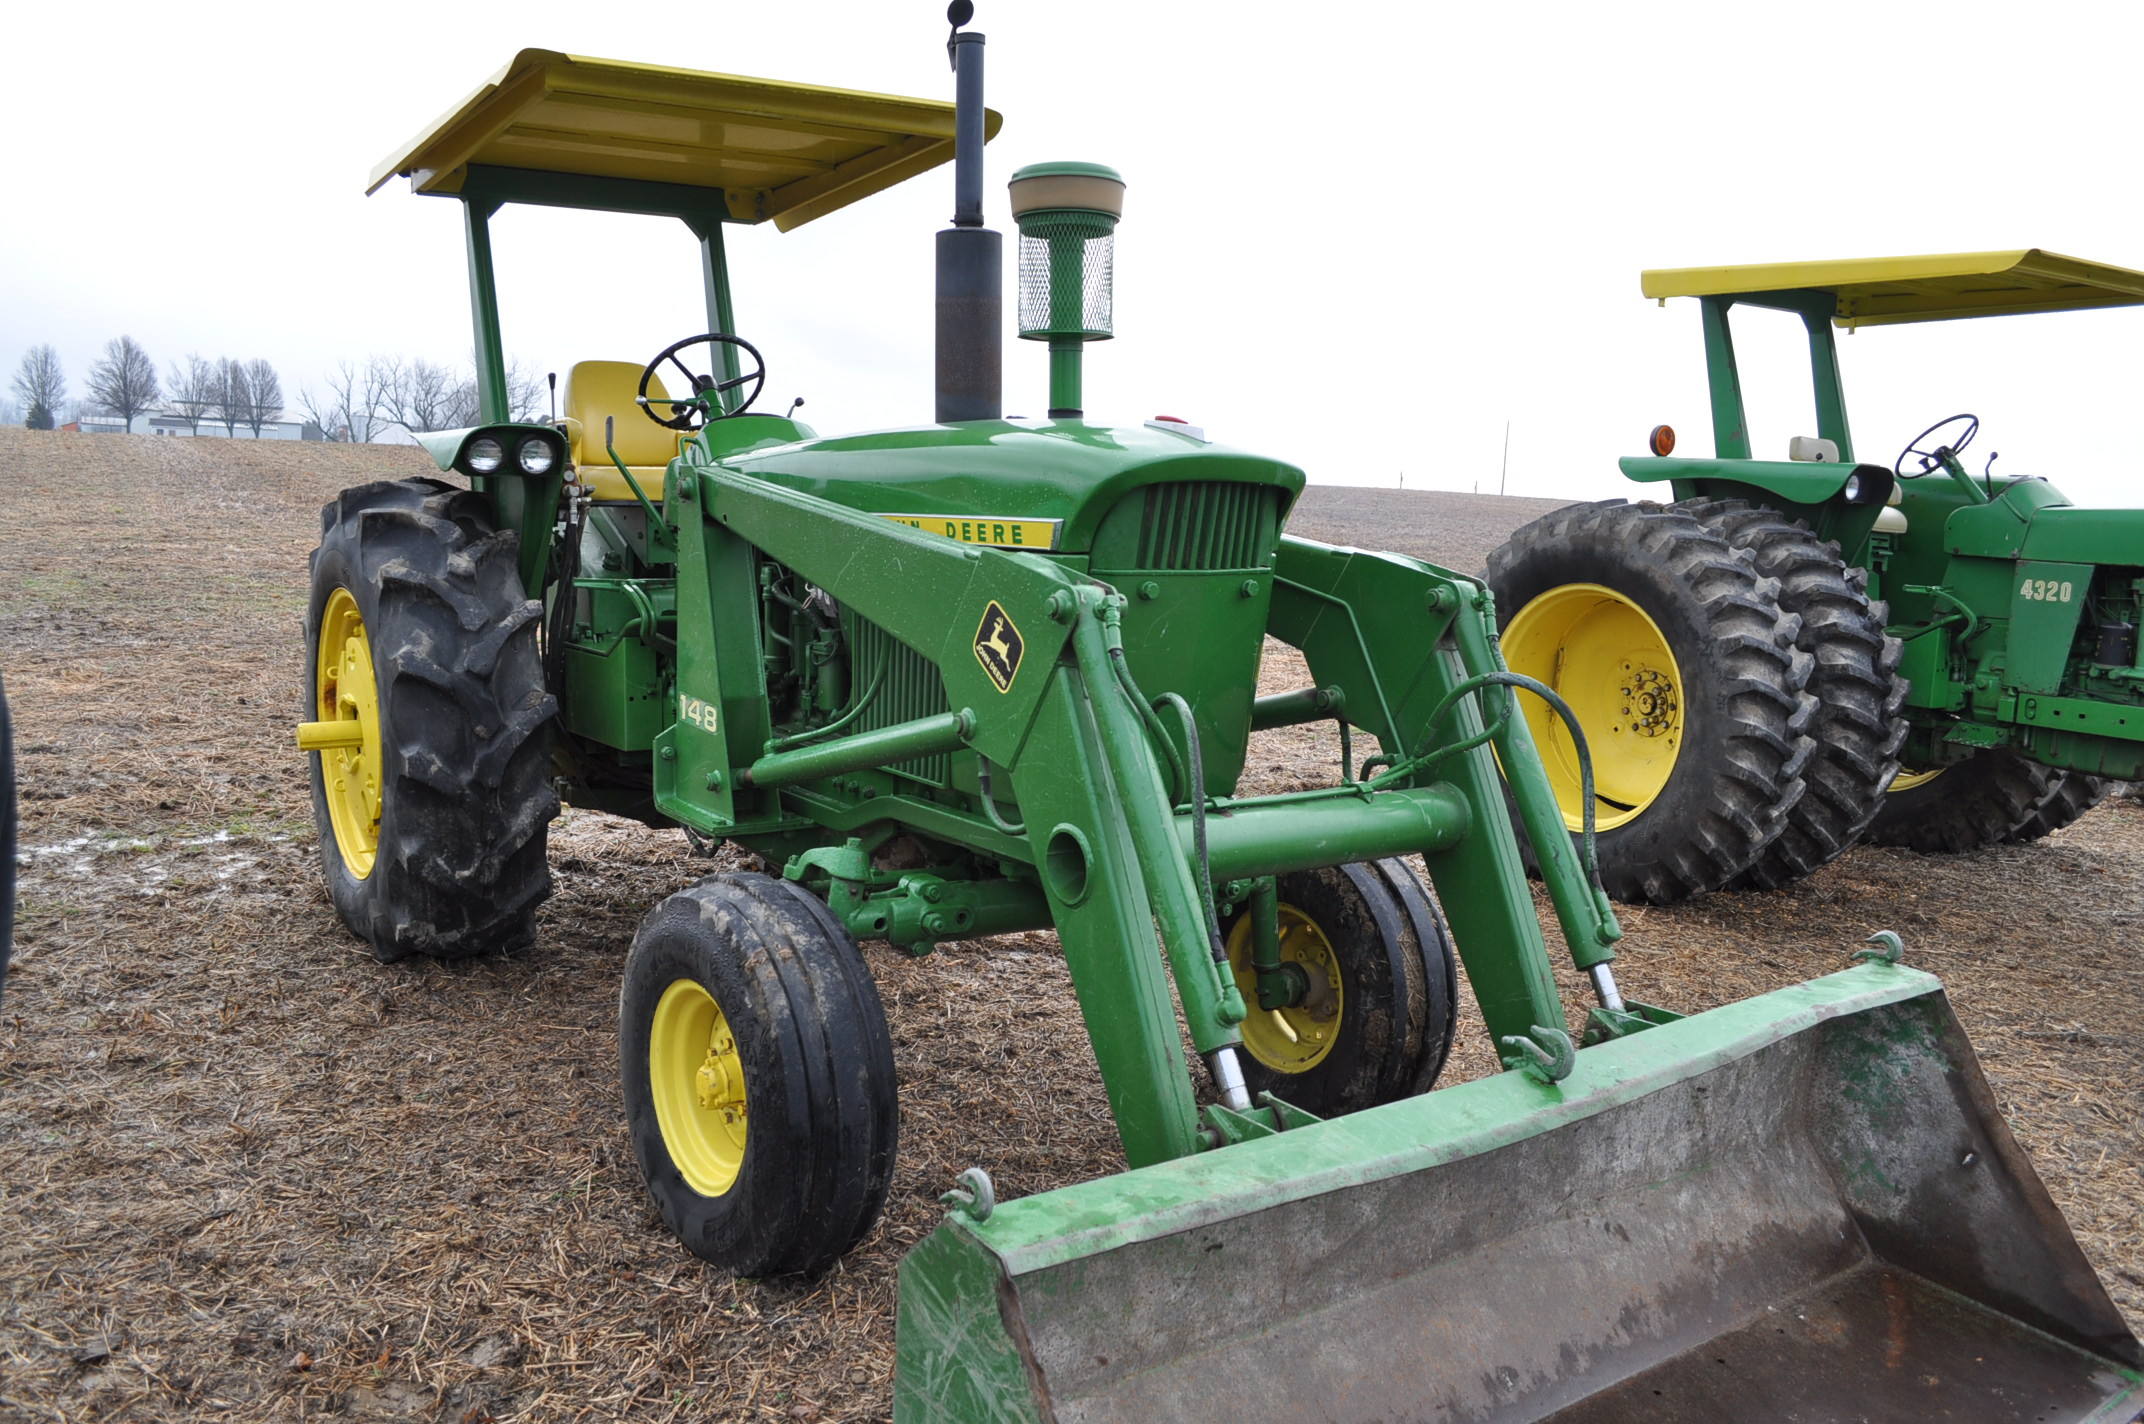 John Deere 4020 tractor, diesel, 18.4-34 tires w/ clamp on dual rims, 11L-15 front, ROPS w/ - Image 4 of 22